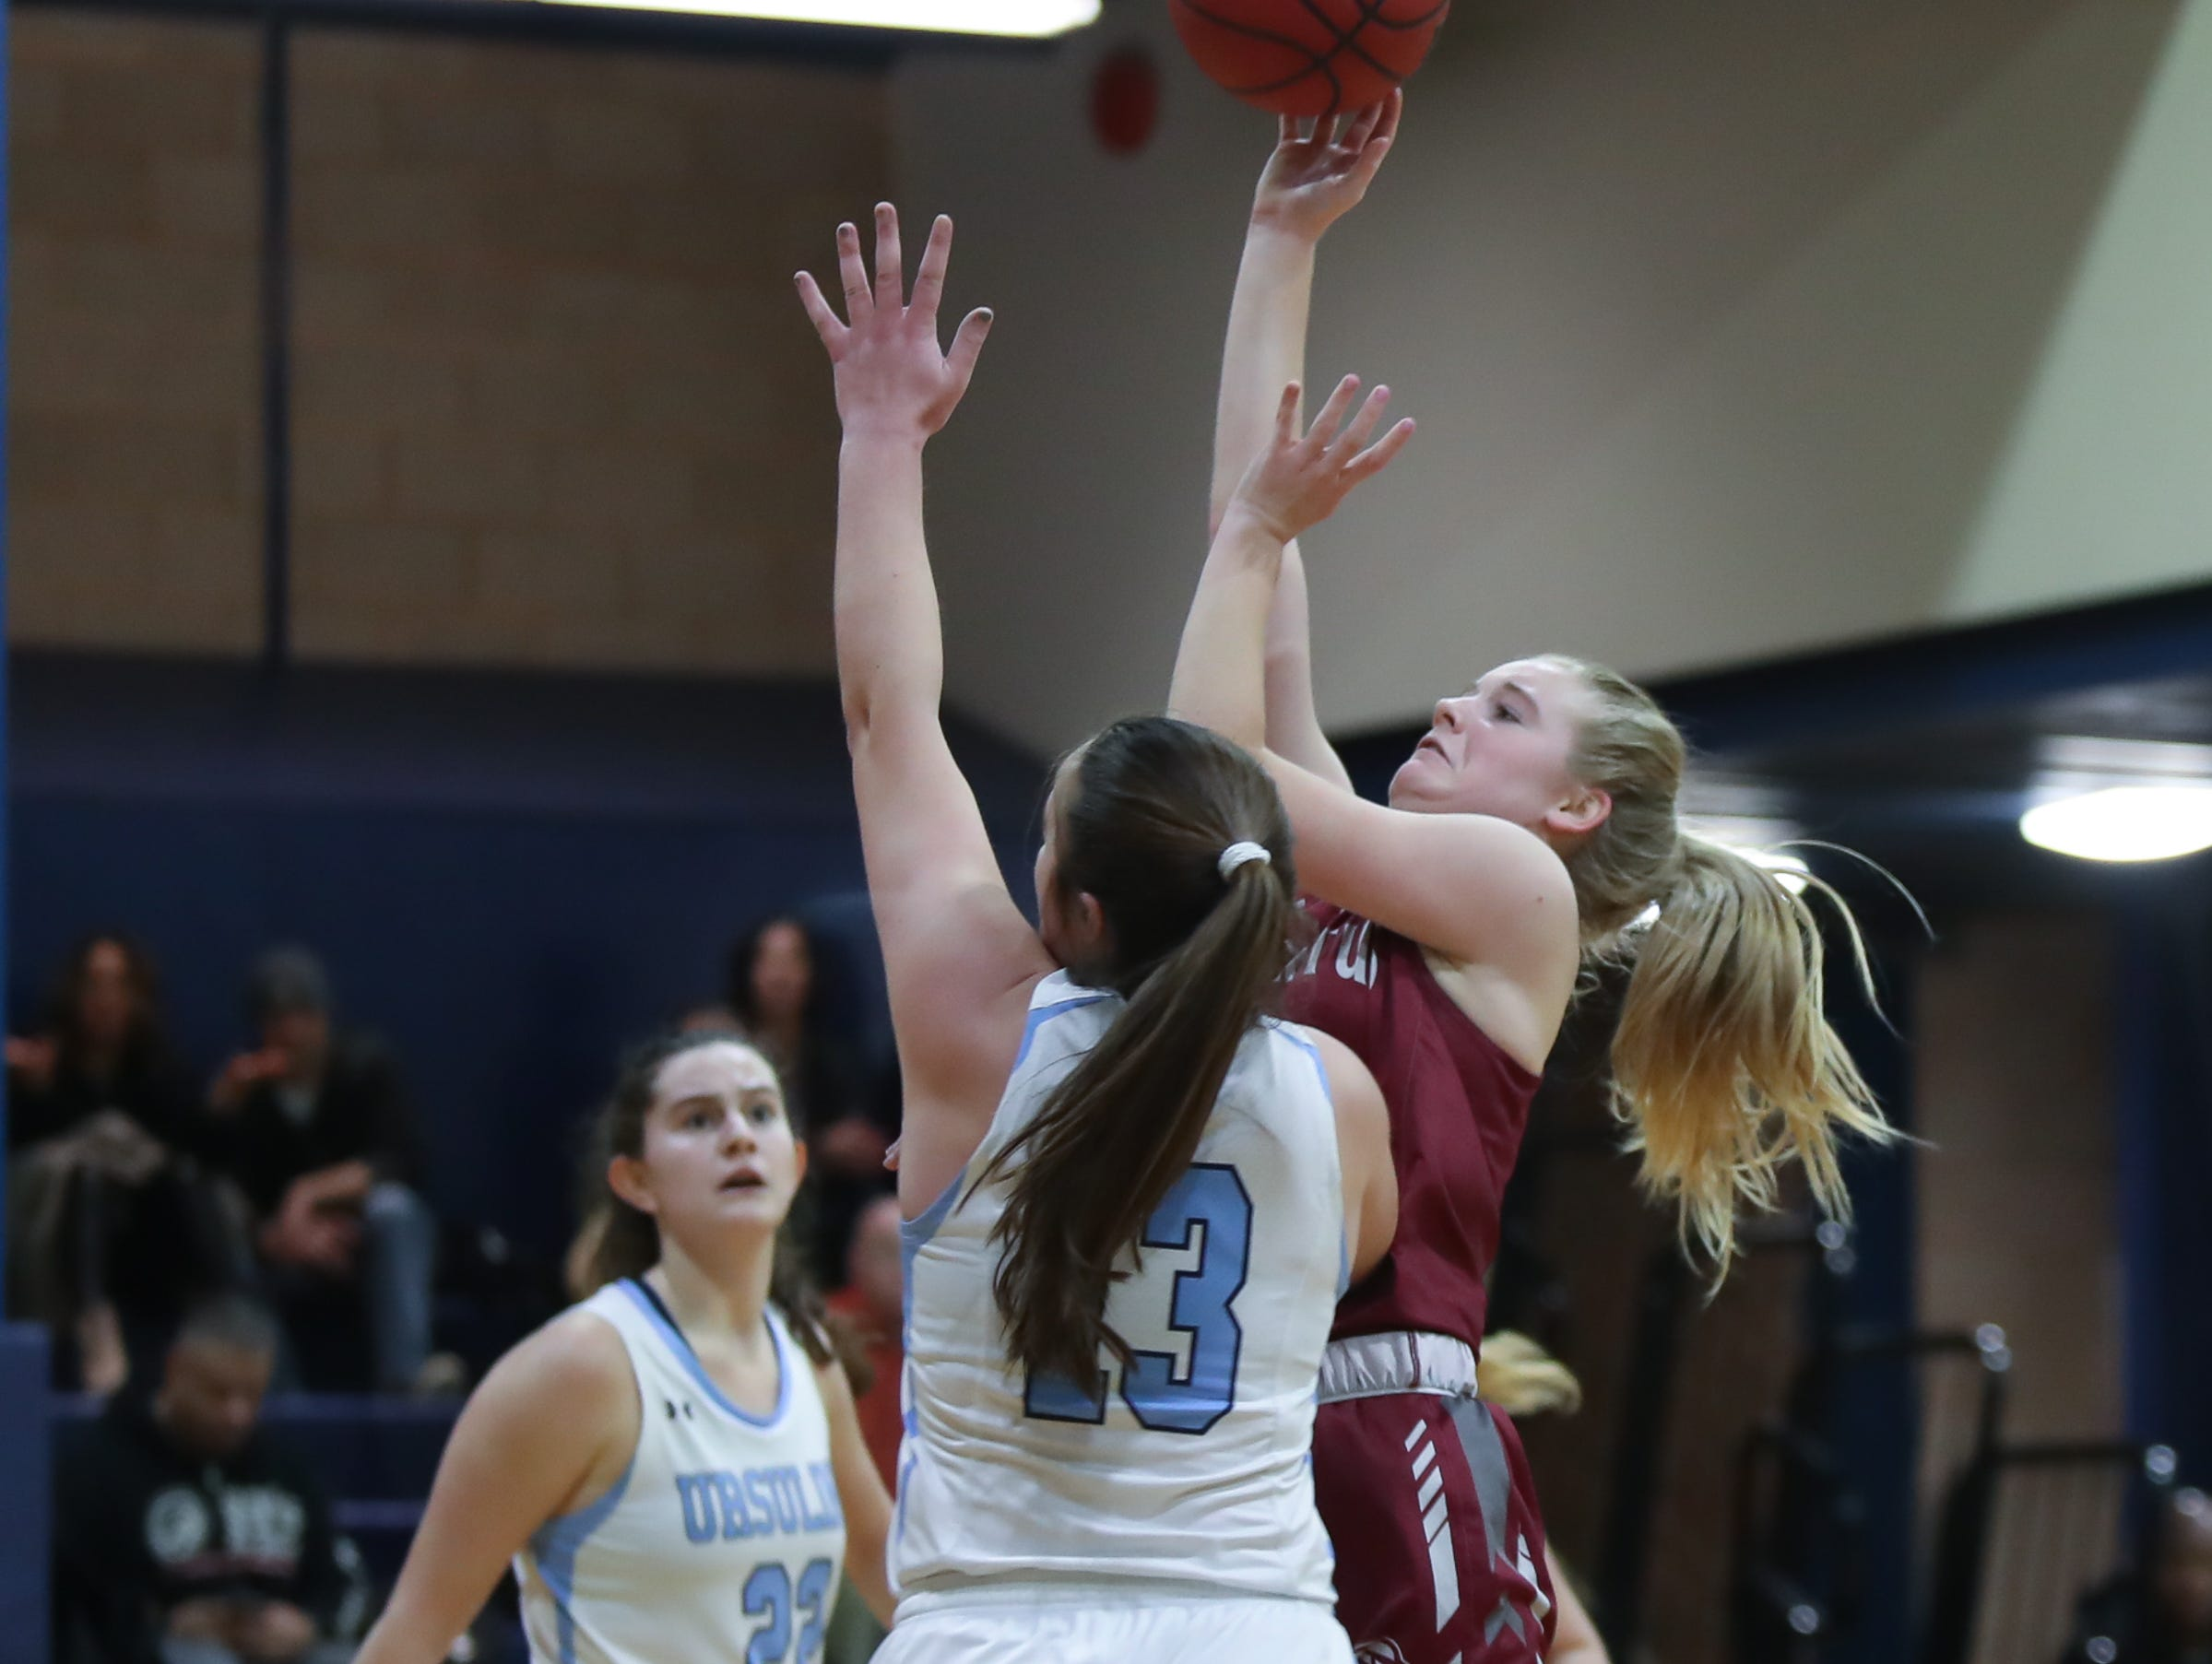 Albertus' Sierra Linnin (4) goes over the top of Ursuline's Jane McCauley (13) during girls varsity basketball action at The Ursuline School in New Rochelle on Wednesday, January 9, 2019.  Ursuline defeated Albertus 68-48.